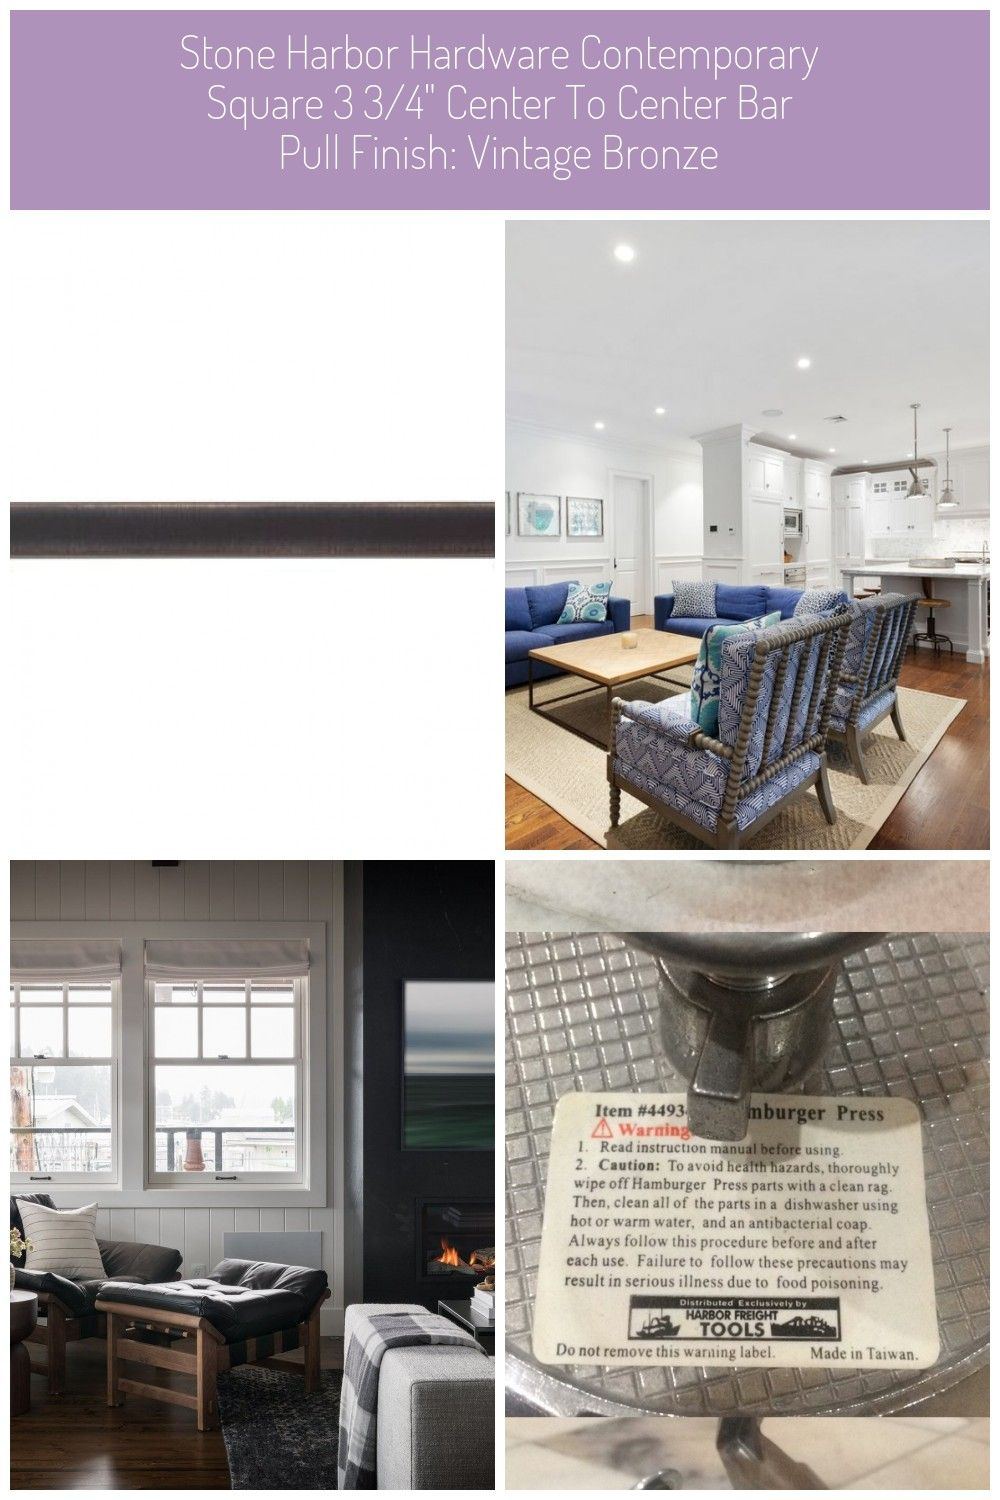 Stone Harbor Hardware The Contemporary Square Pull Is The Ideal Accessory For The Modern Kitchen Or Bath It Coordinates With The Rest Of The Stone Harbor Contem